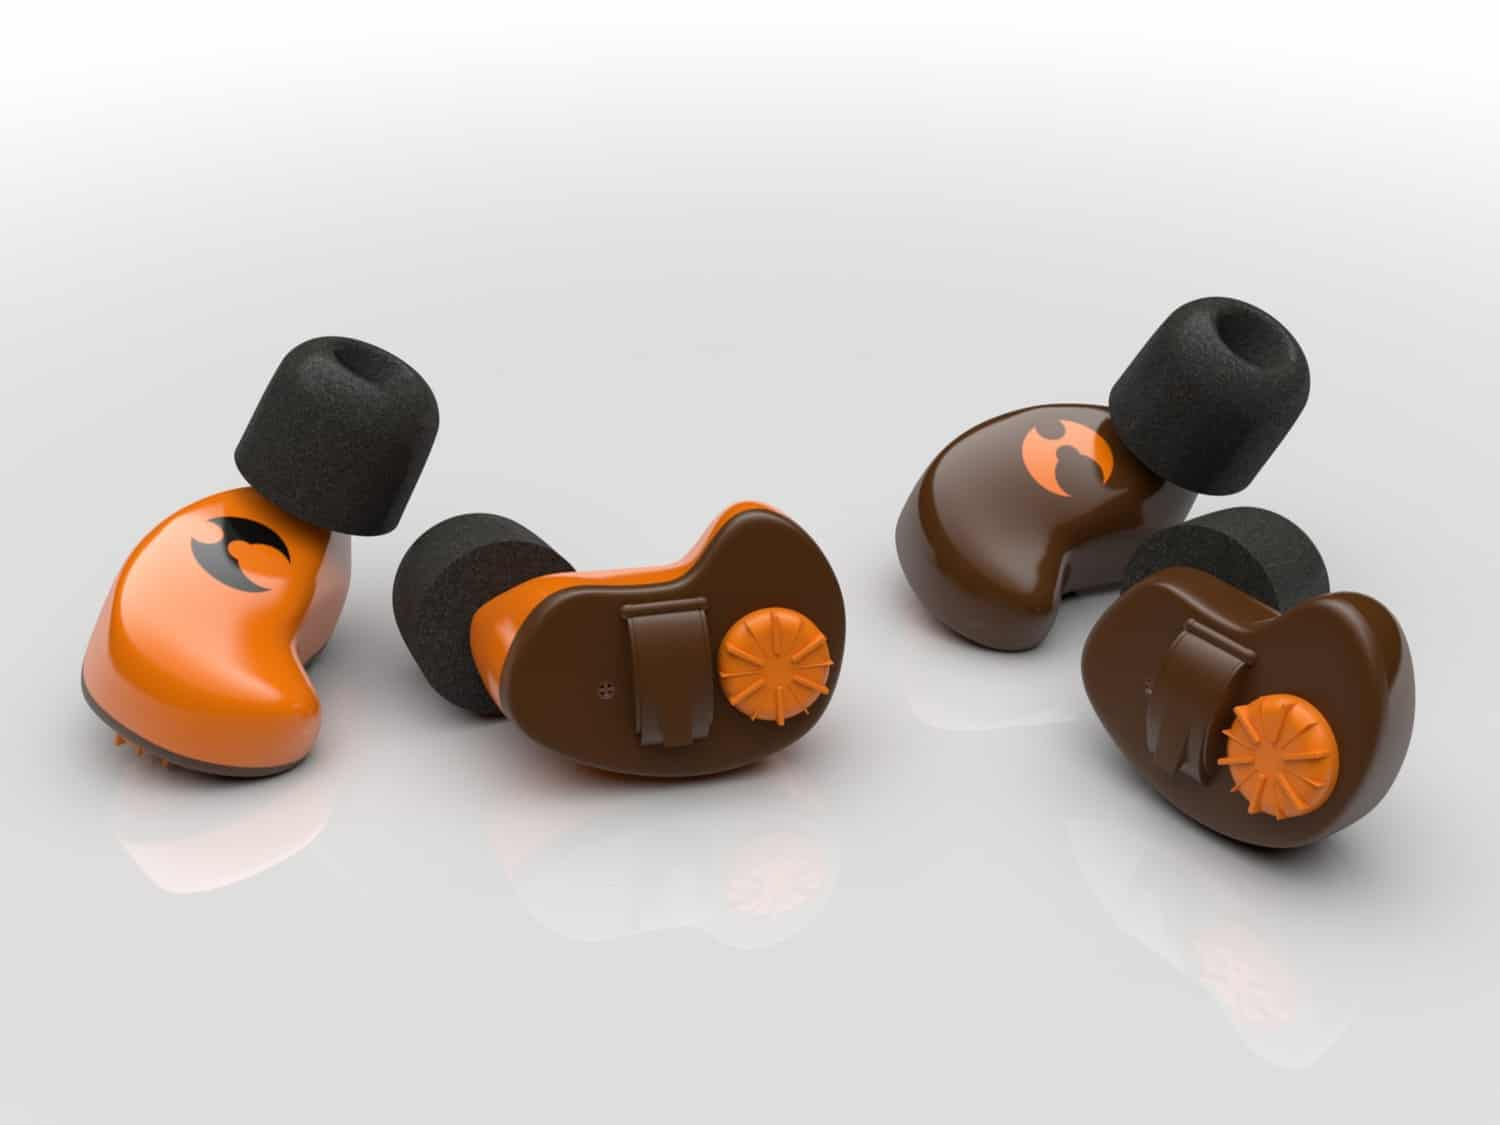 Picture of shothunt earplugs for hunting and shooting